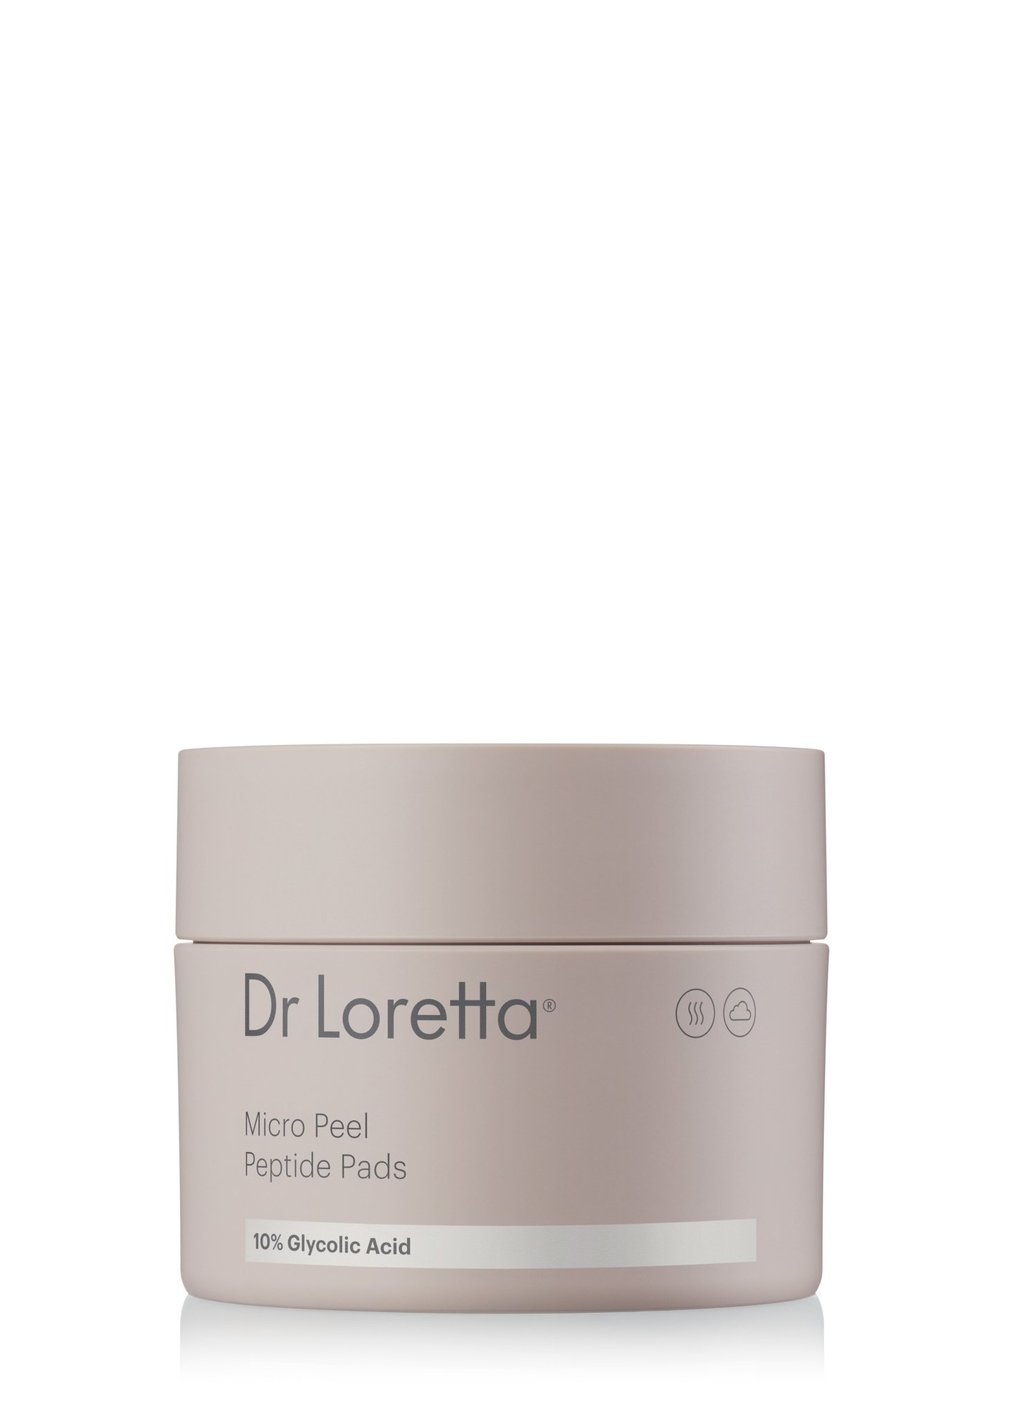 Dr. Loretta Micro Peel Peptide Pads, effects of hard water on skin and hair